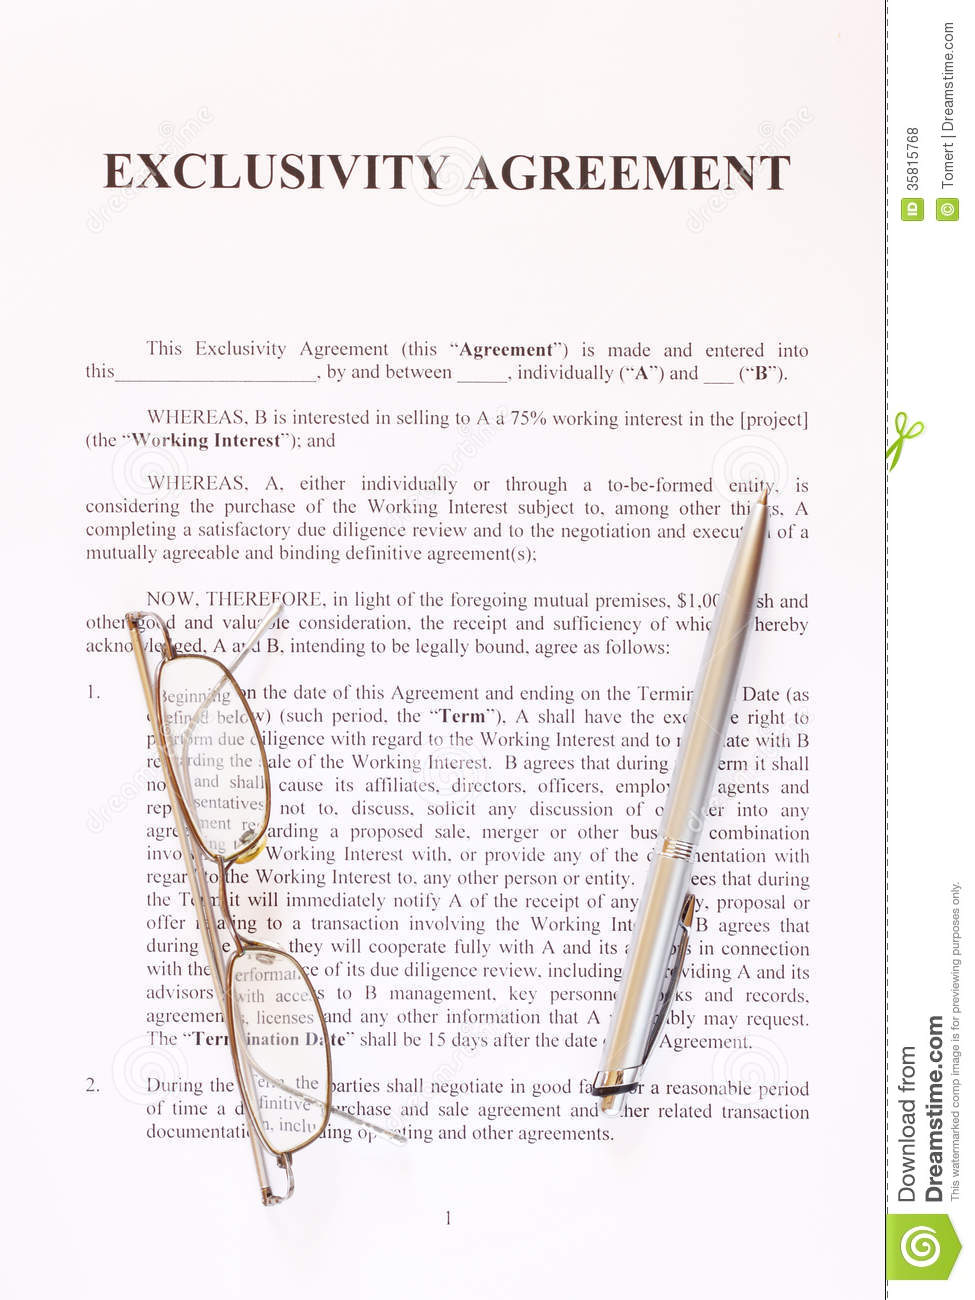 Exclusivity Agreement Form With Pen And Glasses Stock Photo Image